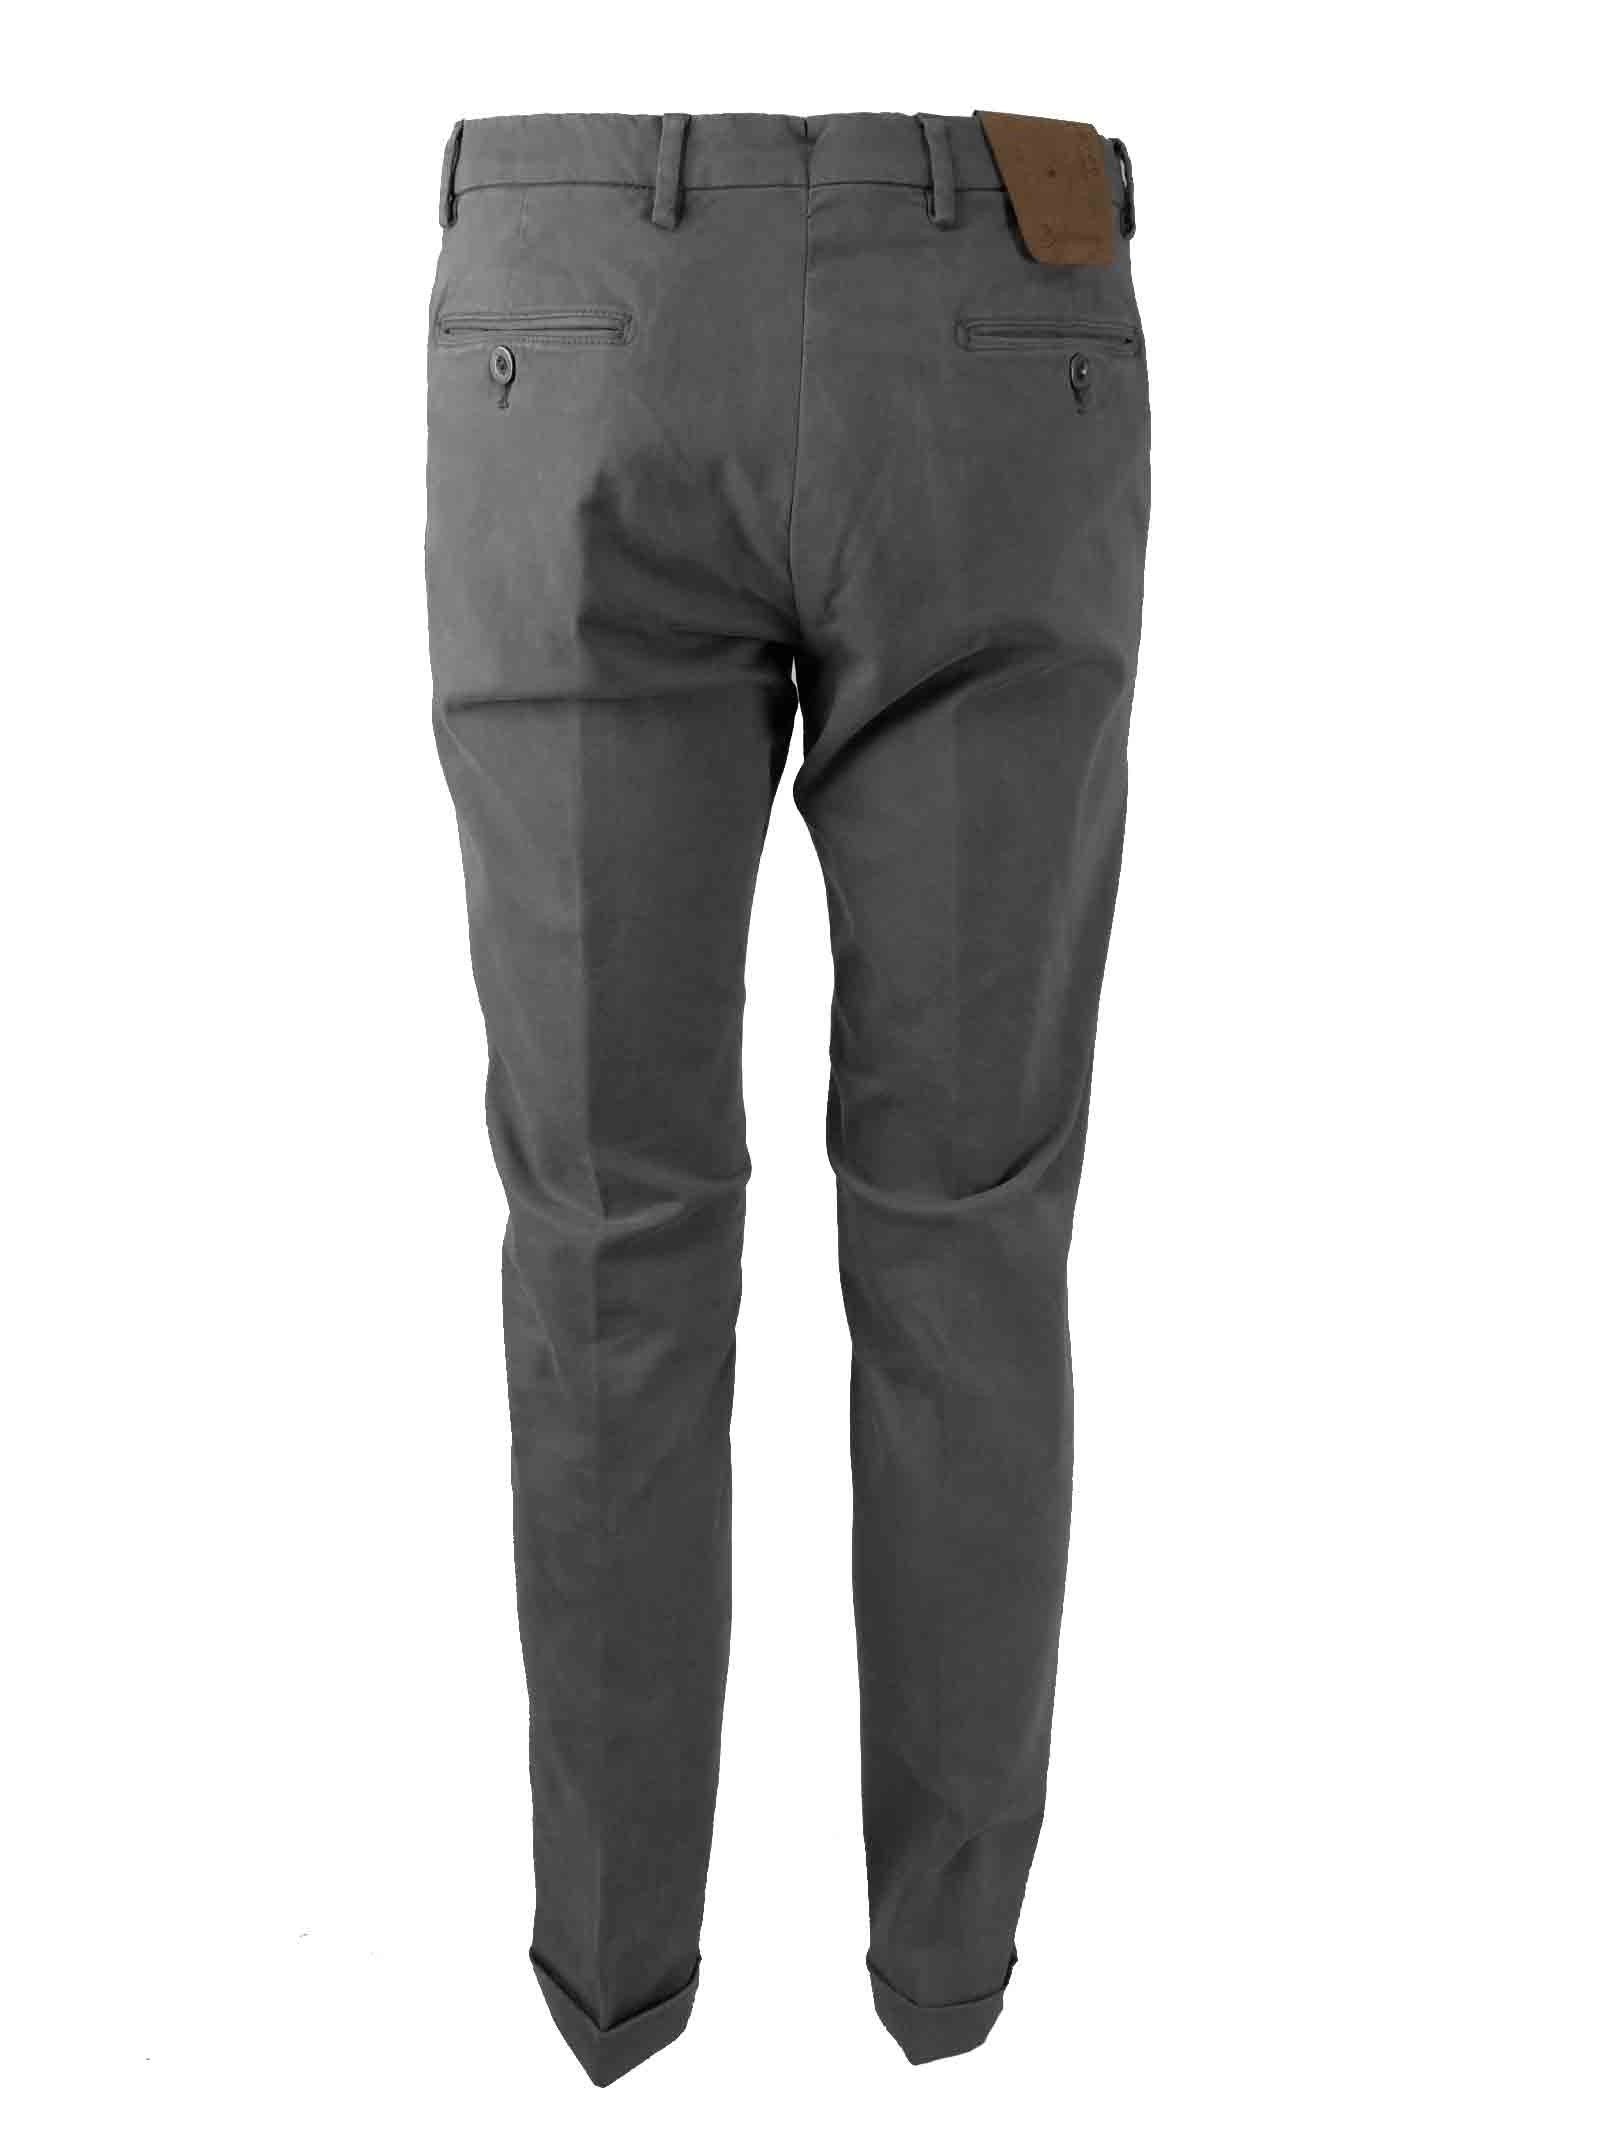 B700 | Trousers | MH700 802976